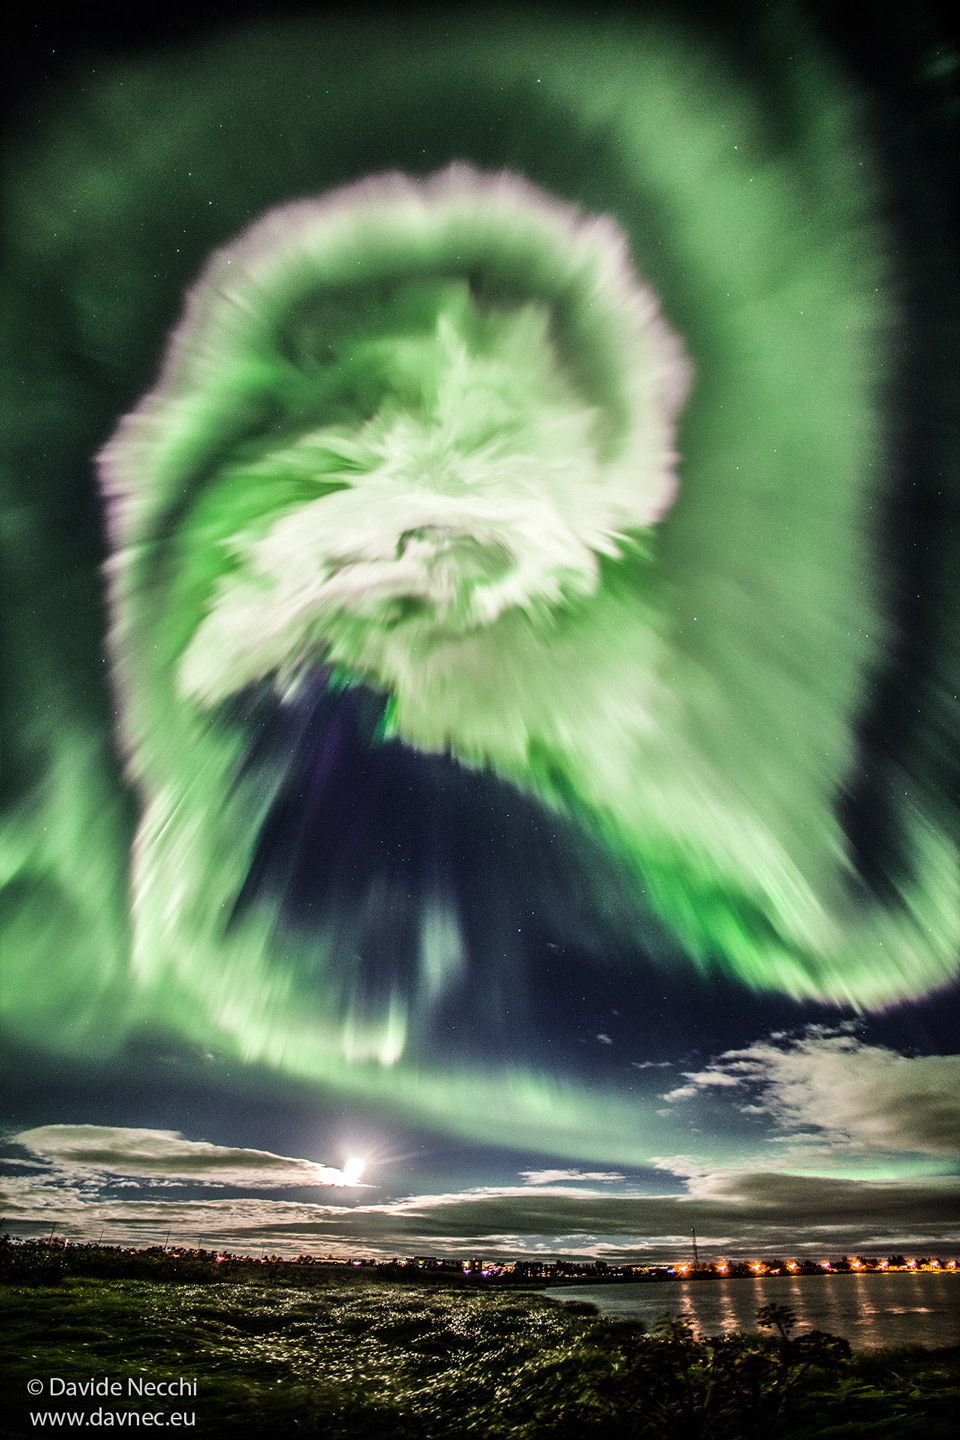 The picture shows a dramatic spiral-shaped aurora over Iceland. Please see the explanation for more detailed information.